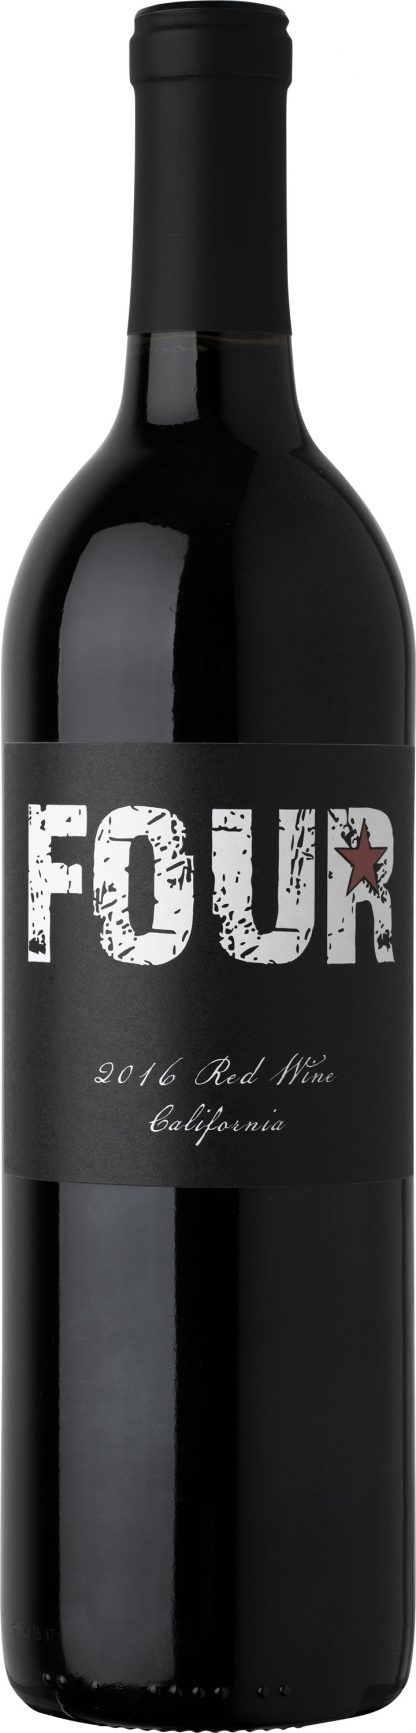 Four Star Napa - Red Blend 2016